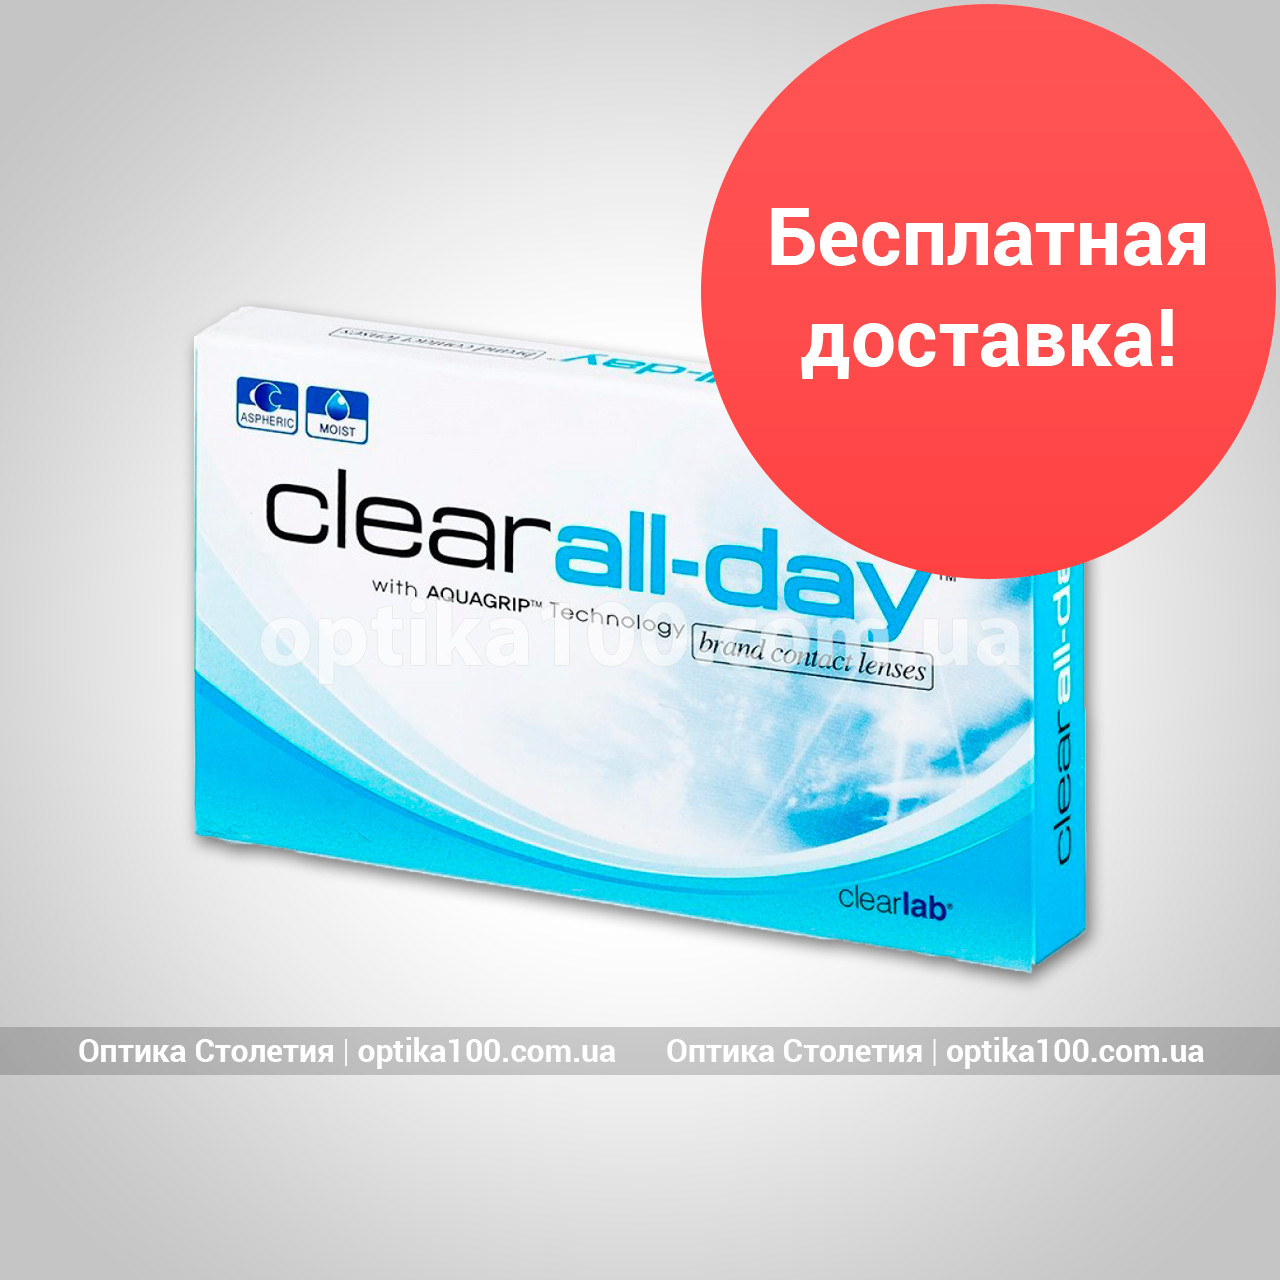 Контактные линзы Clear all-day. 6 шт. по 103 грн.